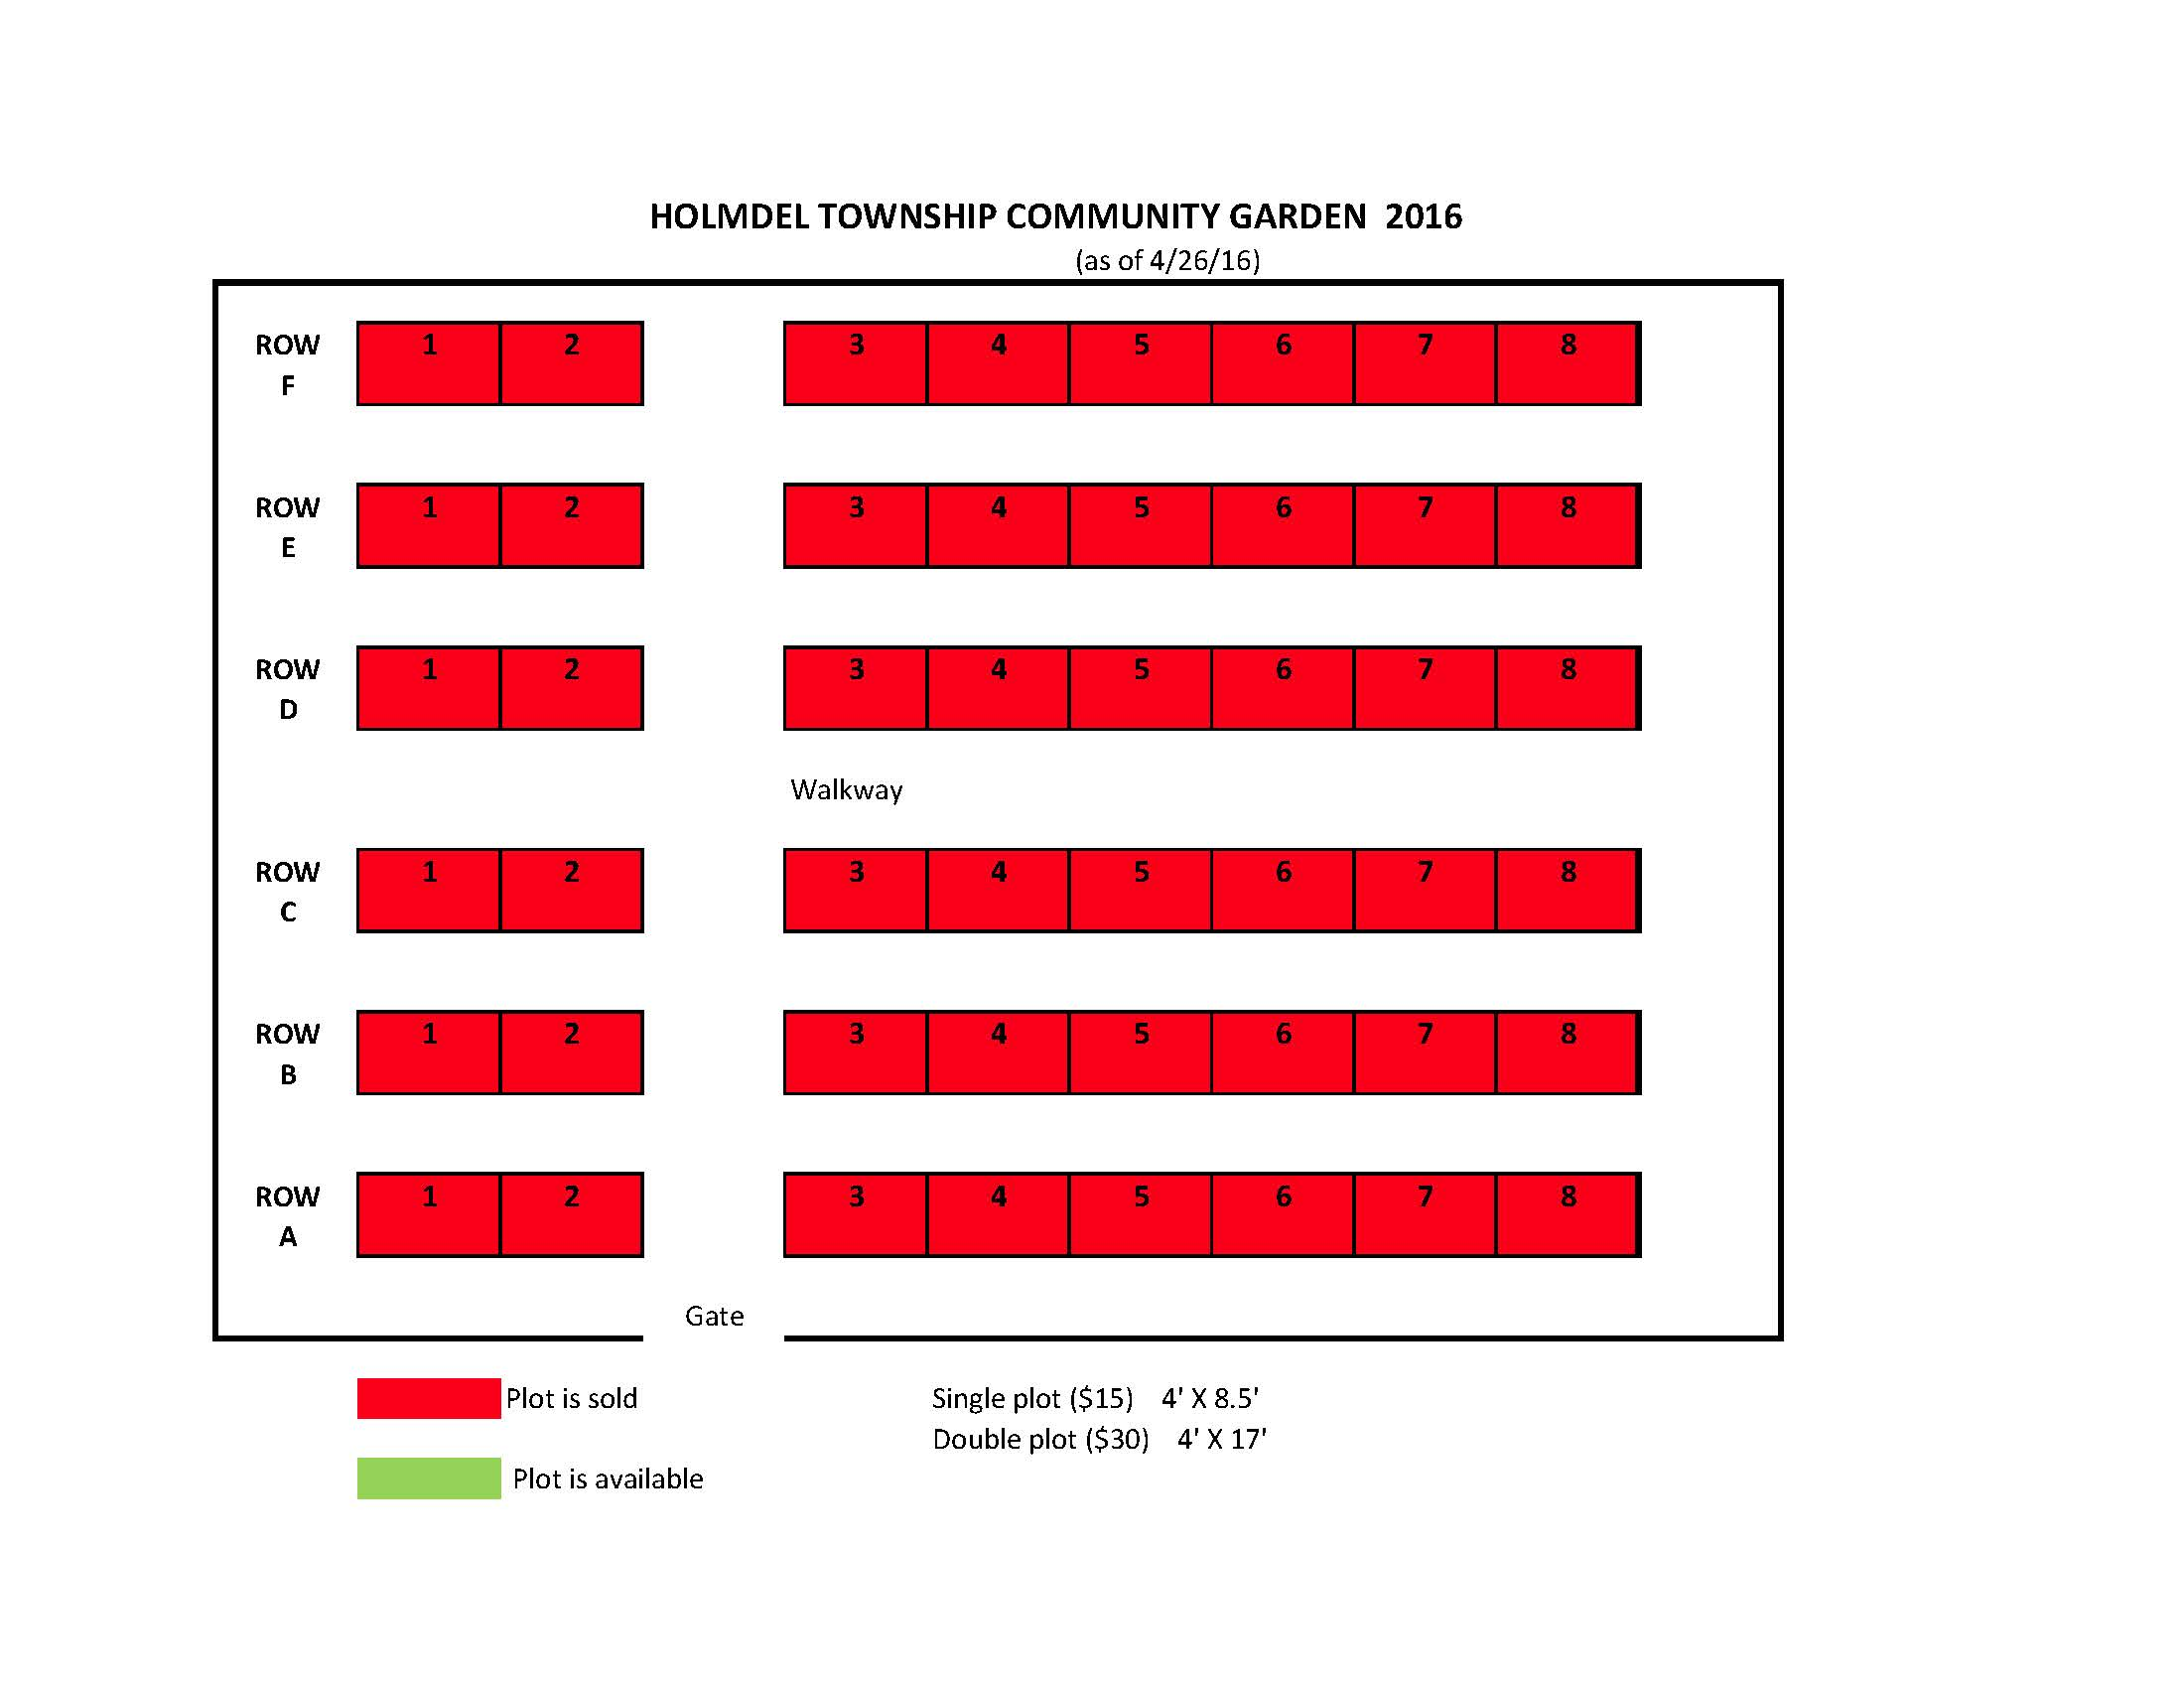 Community Garden Map 2016 4-26-16 -Image